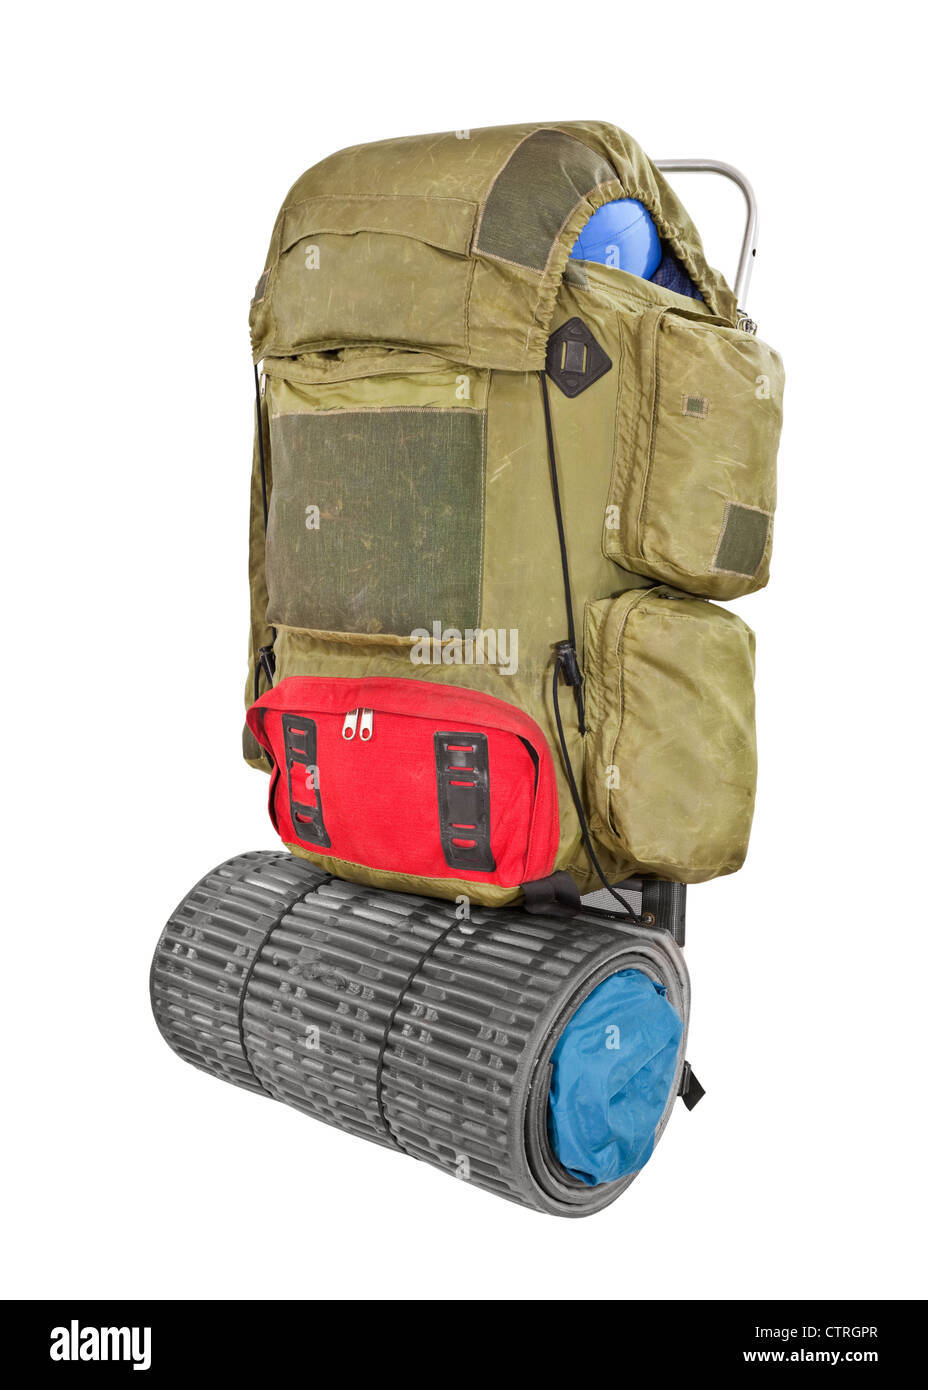 Vintage grungy backpack isolated with clipping path. - Stock Image